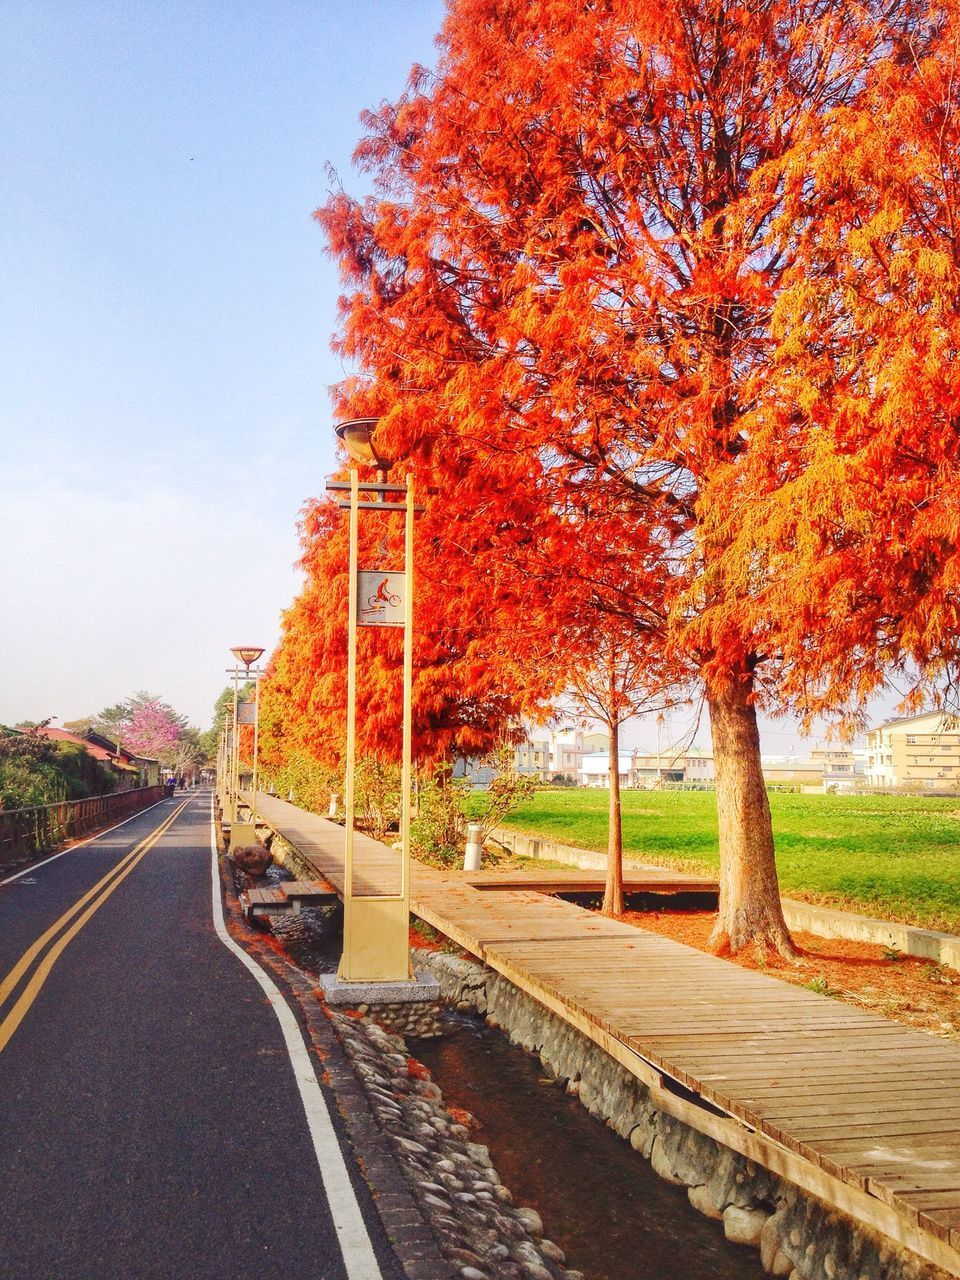 tree, transportation, autumn, road, the way forward, change, car, street, season, land vehicle, clear sky, built structure, mode of transport, orange color, diminishing perspective, day, building exterior, growth, outdoors, city